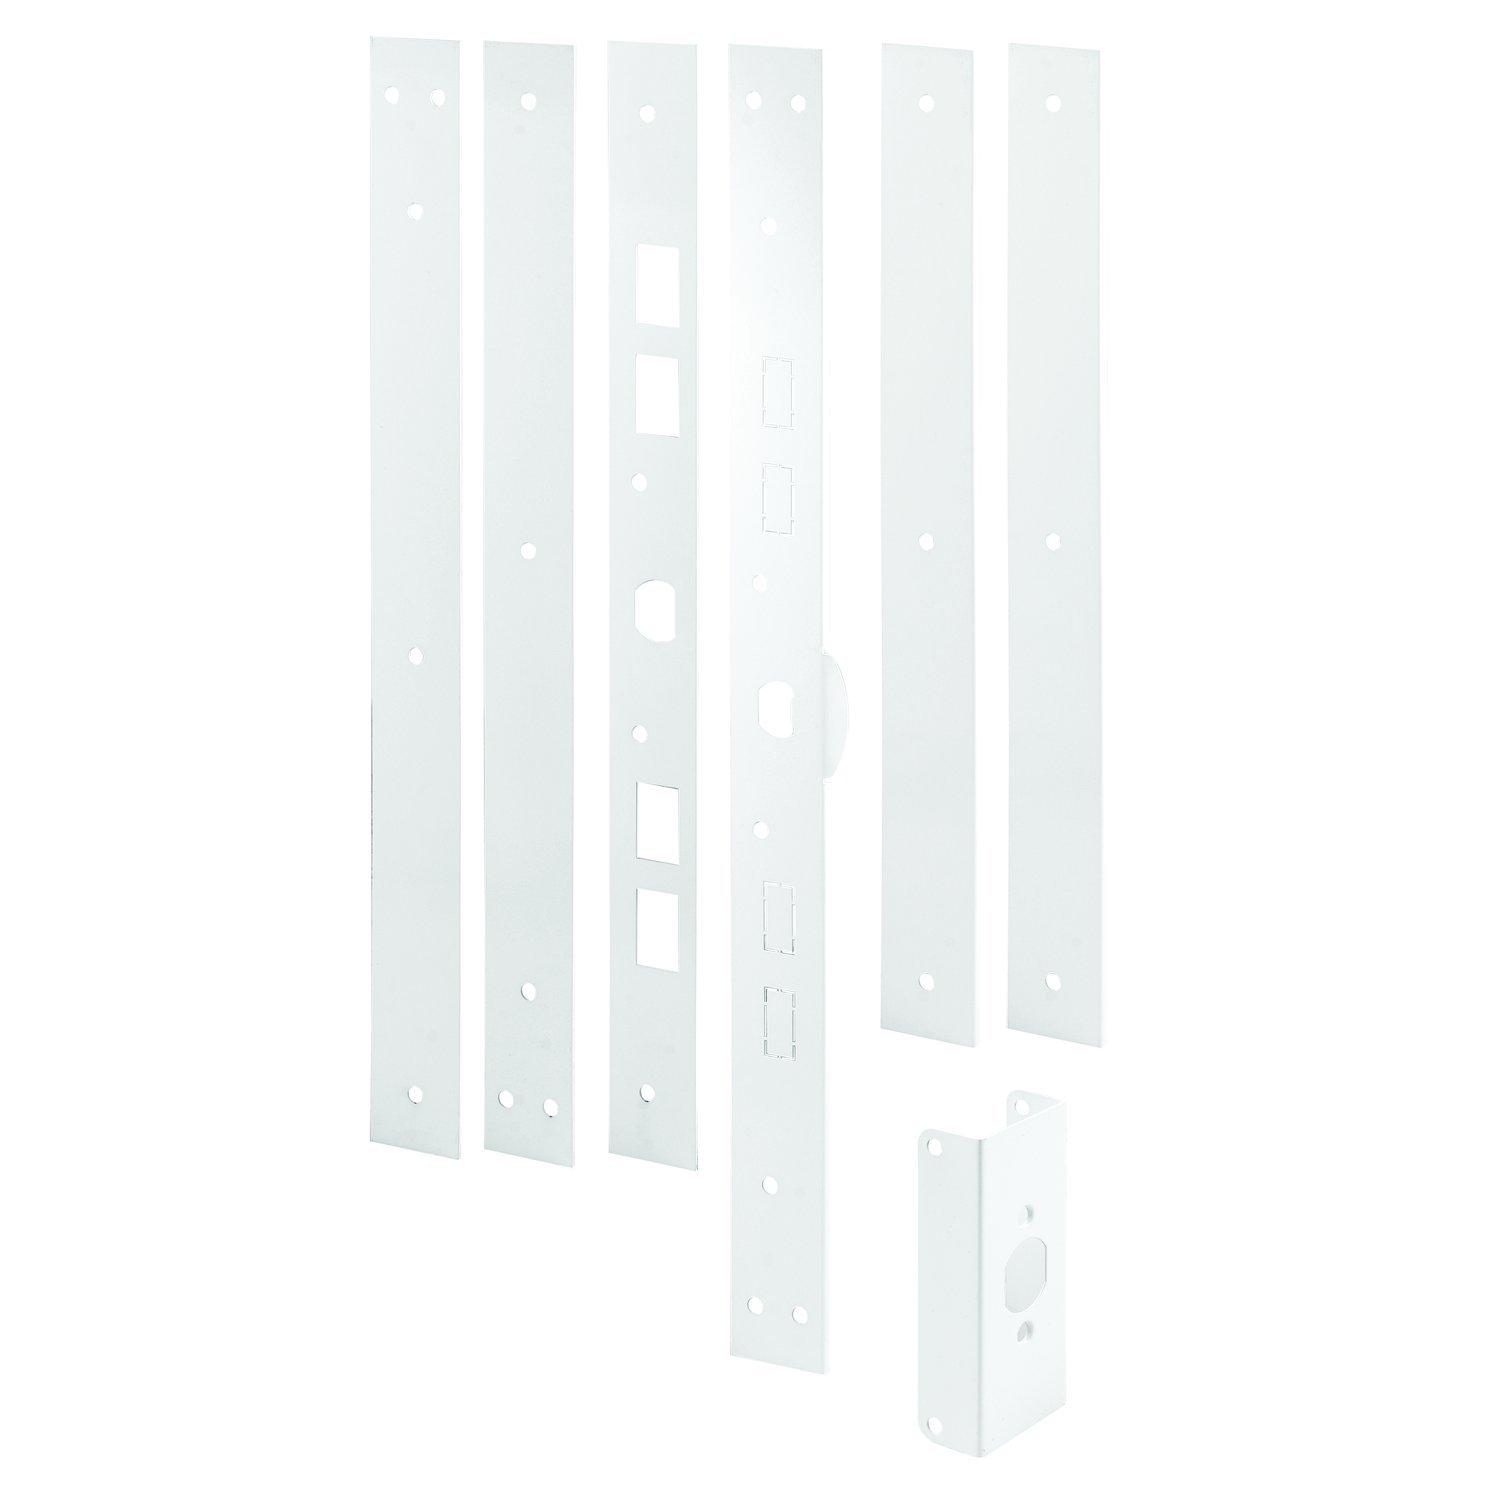 Prime-Line U 11026 Jamb Repair and Reinforcement Kit, 59-1/2'' - Reinforce and Repair Door Jamb - Add Extra Security to Your Home to Help Prevent Forced Entry - Steel, Paintable White Finish by Defender Security